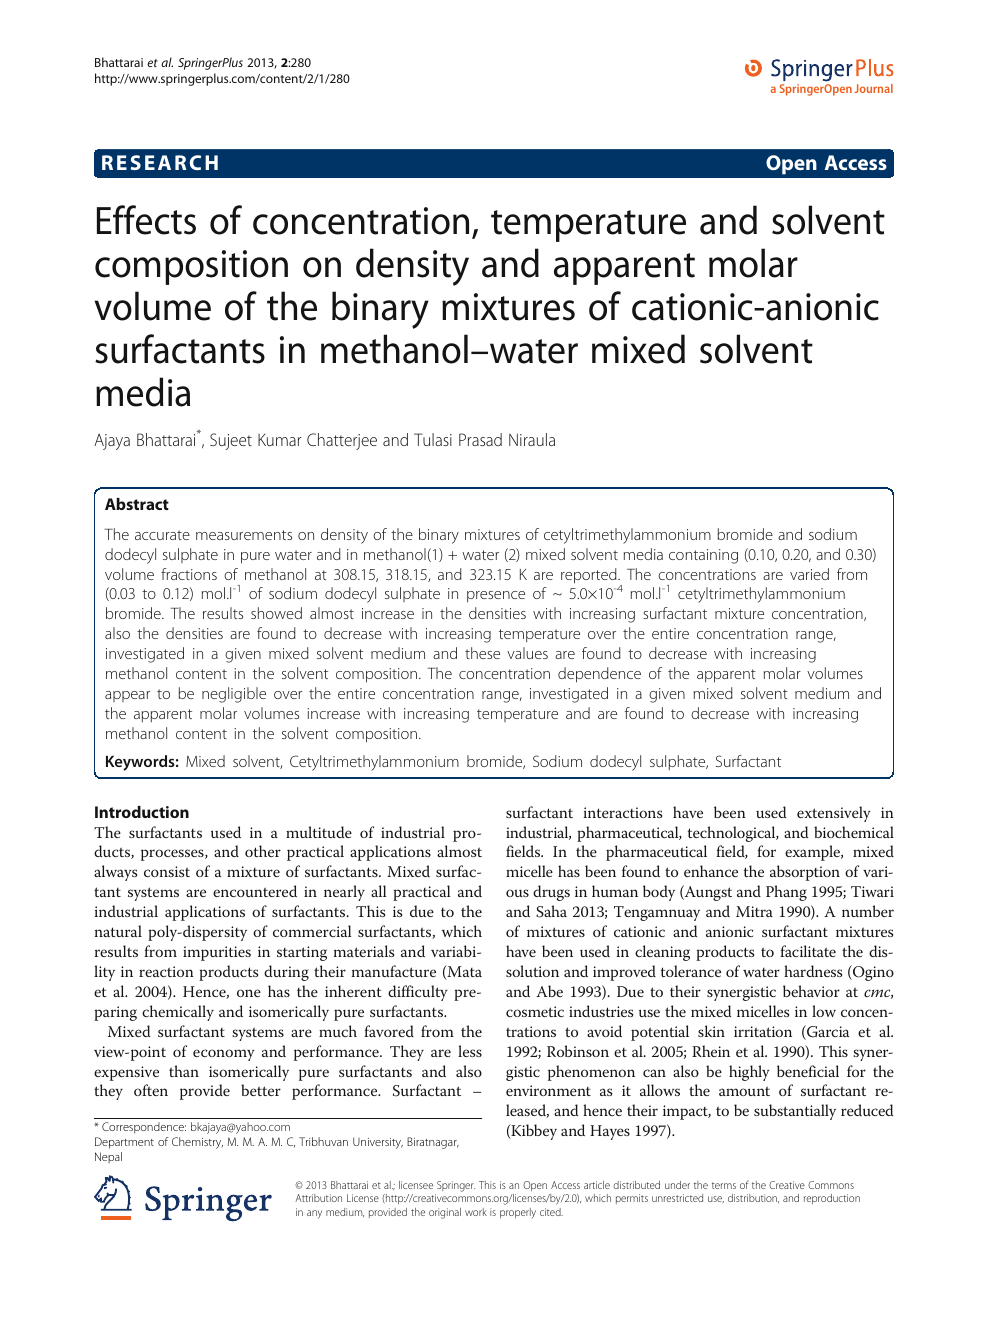 Effects of concentration, temperature and solvent